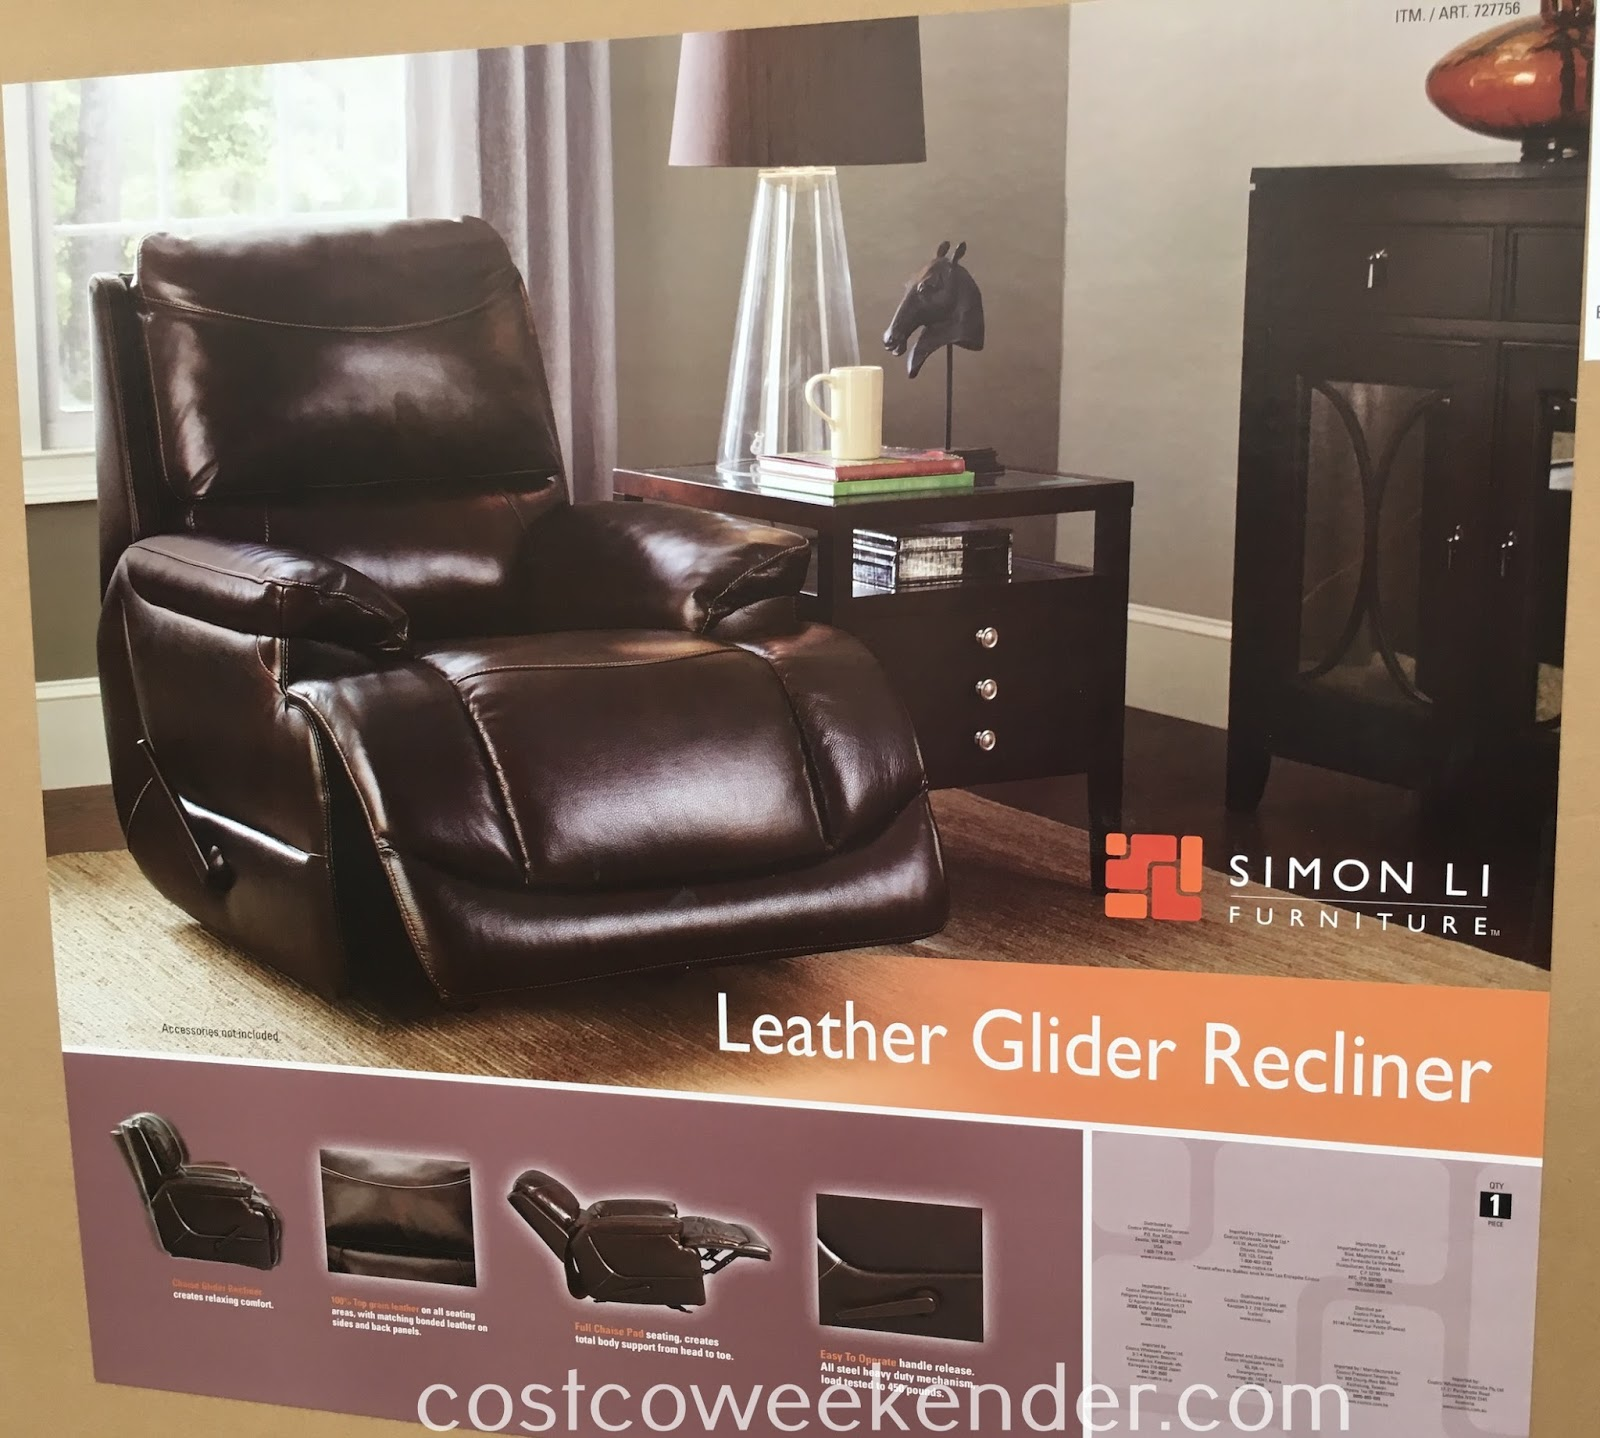 Relax when you sit, lie, or just lounge in the Simon Li Leather Glider Recliner Chair